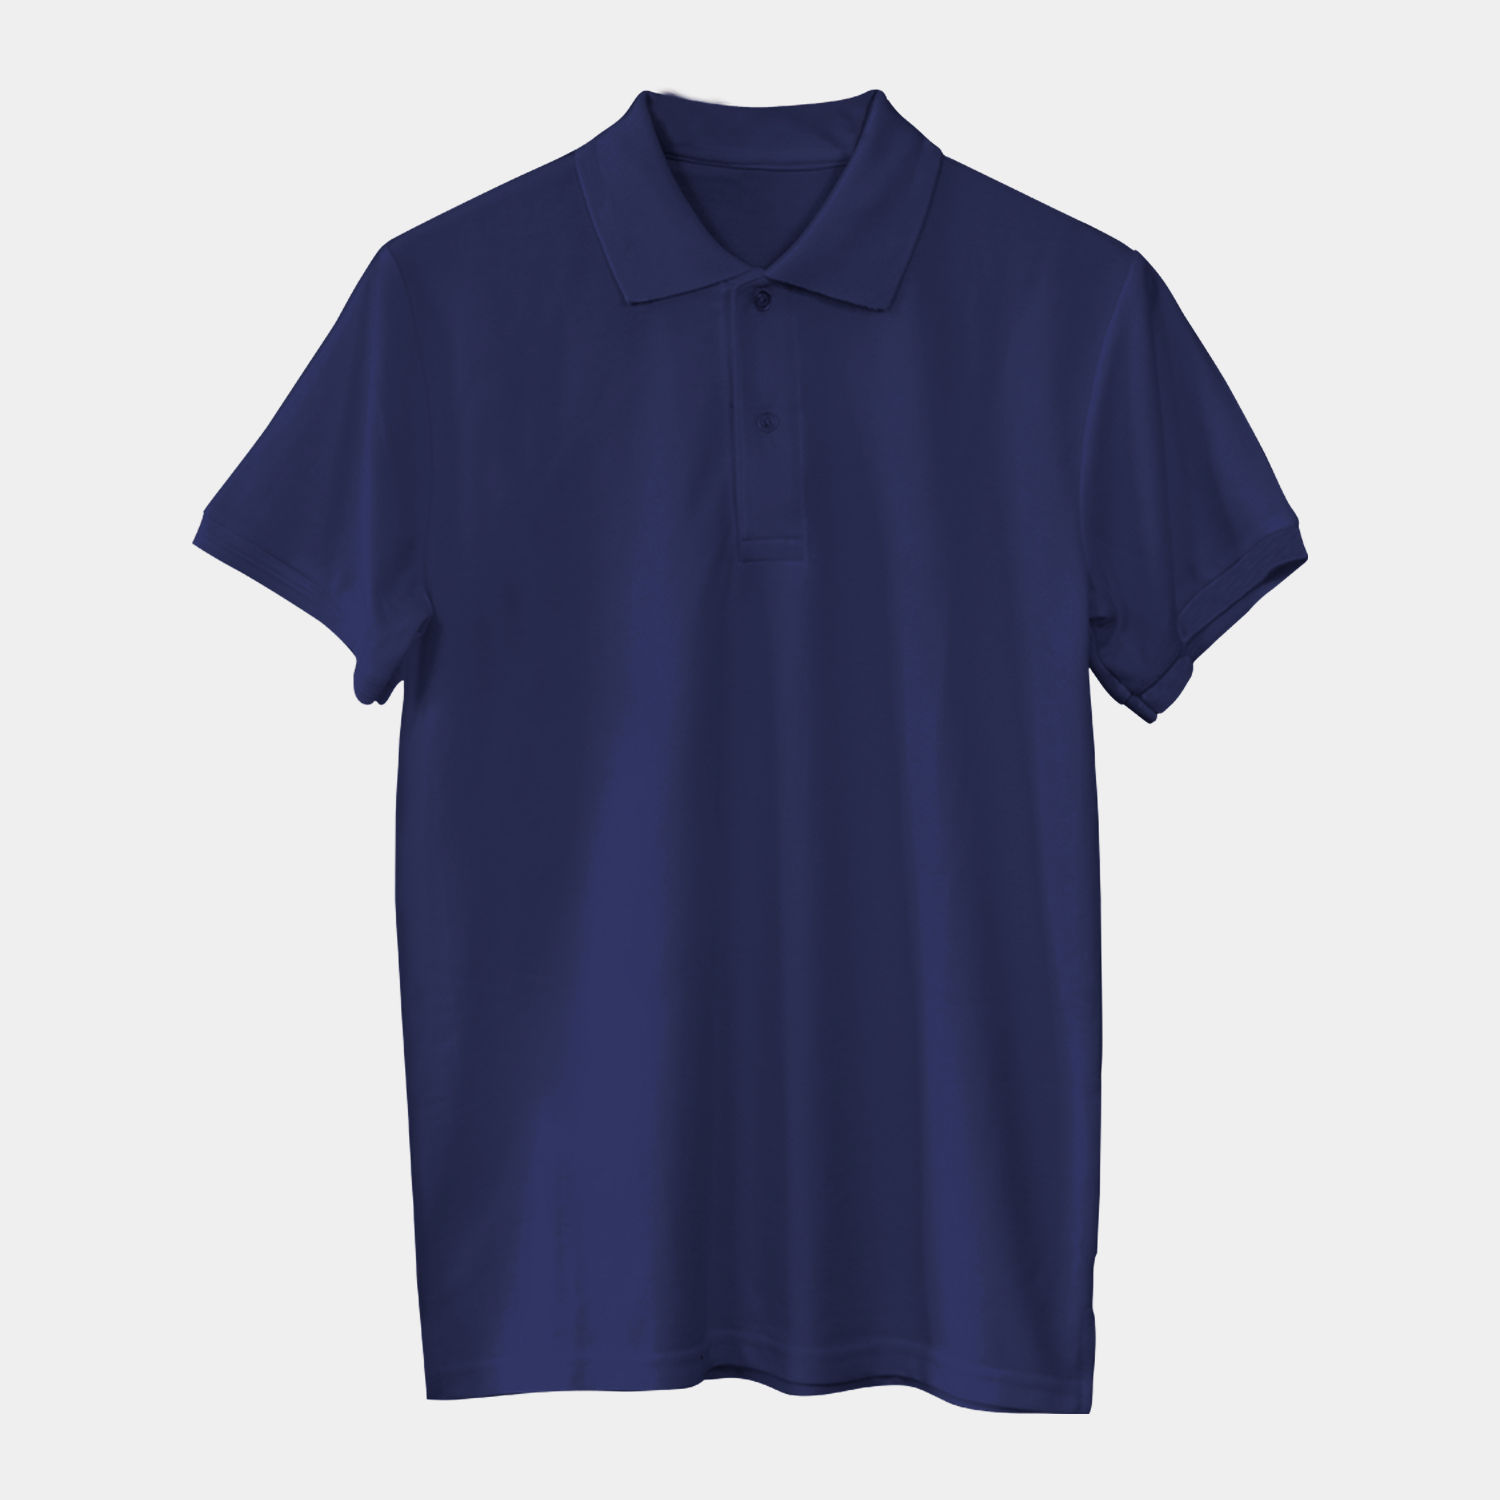 Solids: Navy Blue Polo